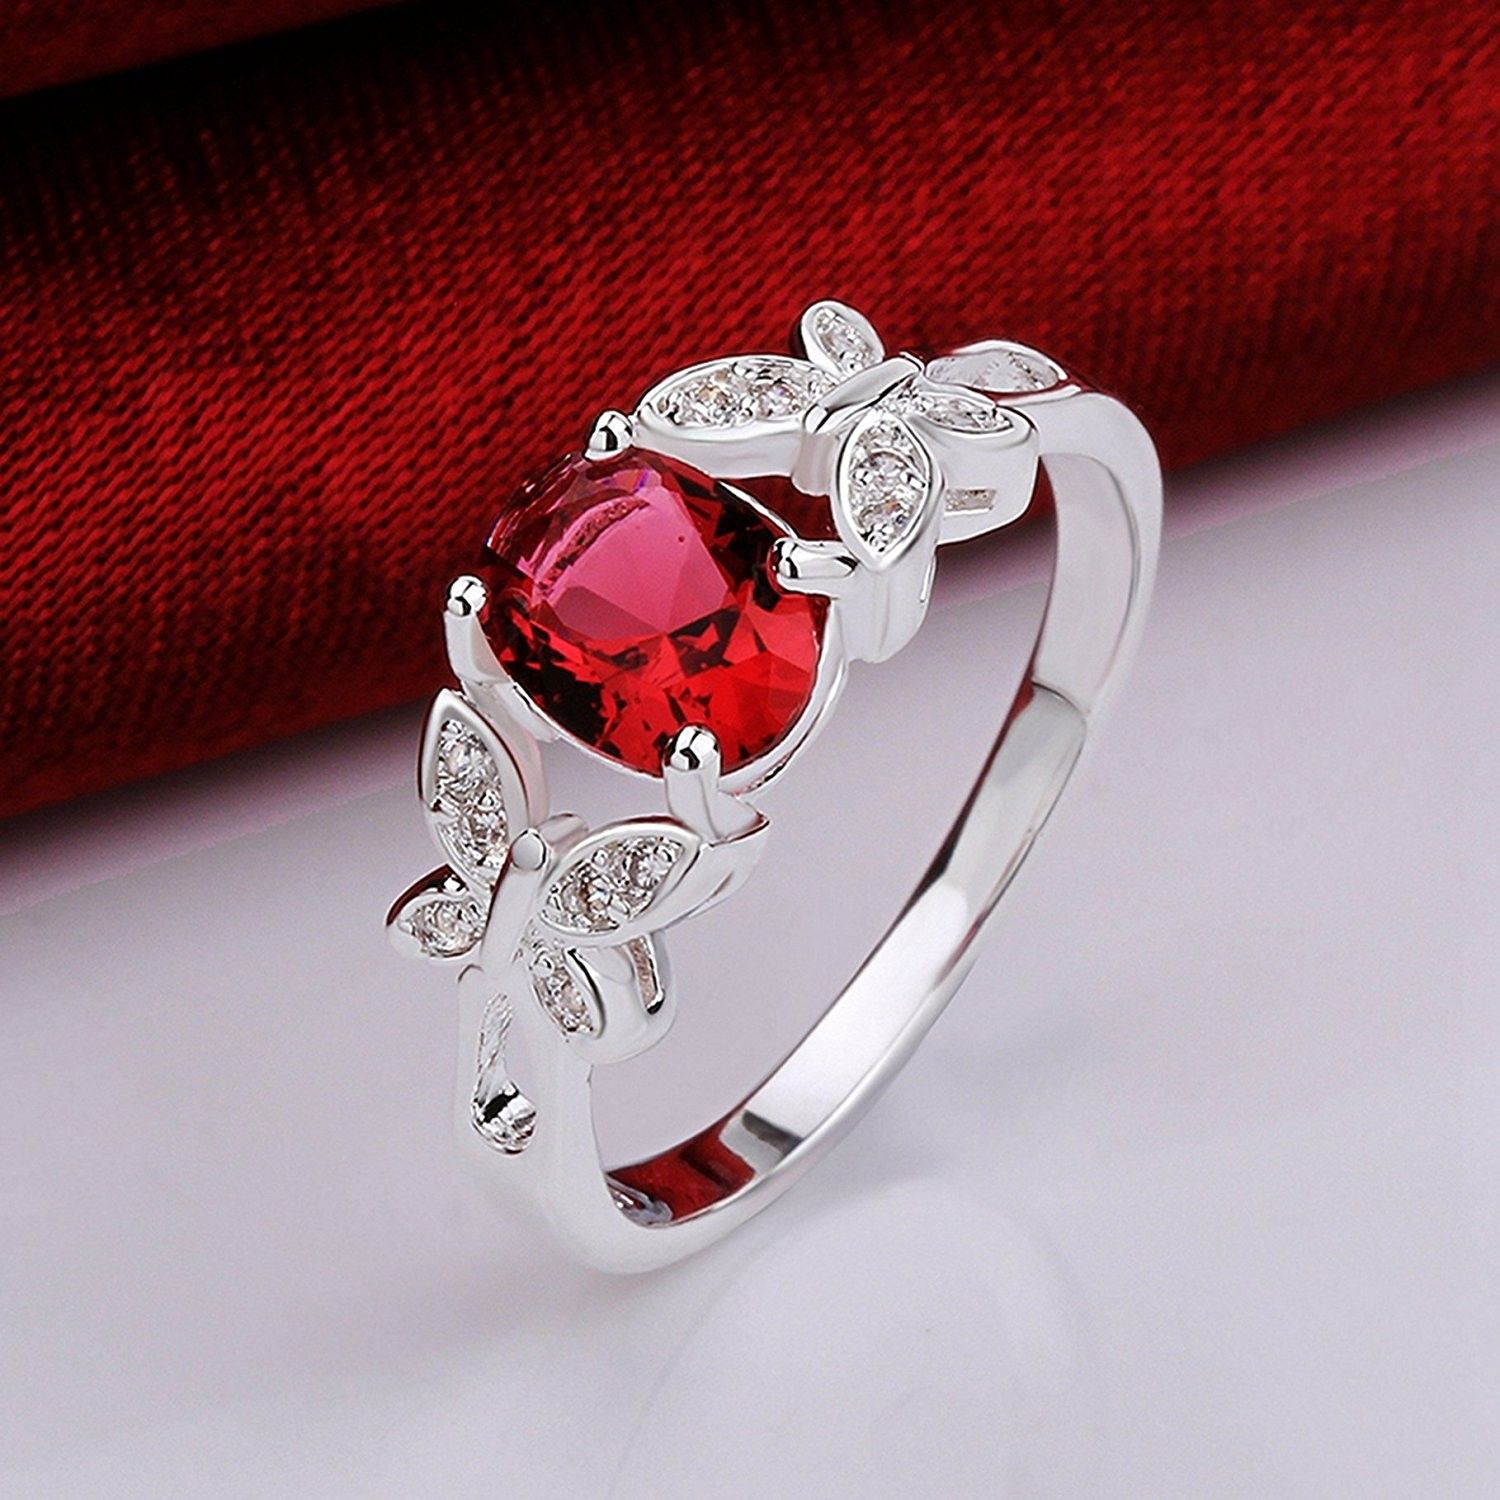 Butterfly Solitaire Engagement Anniversary CB12E5W24N1